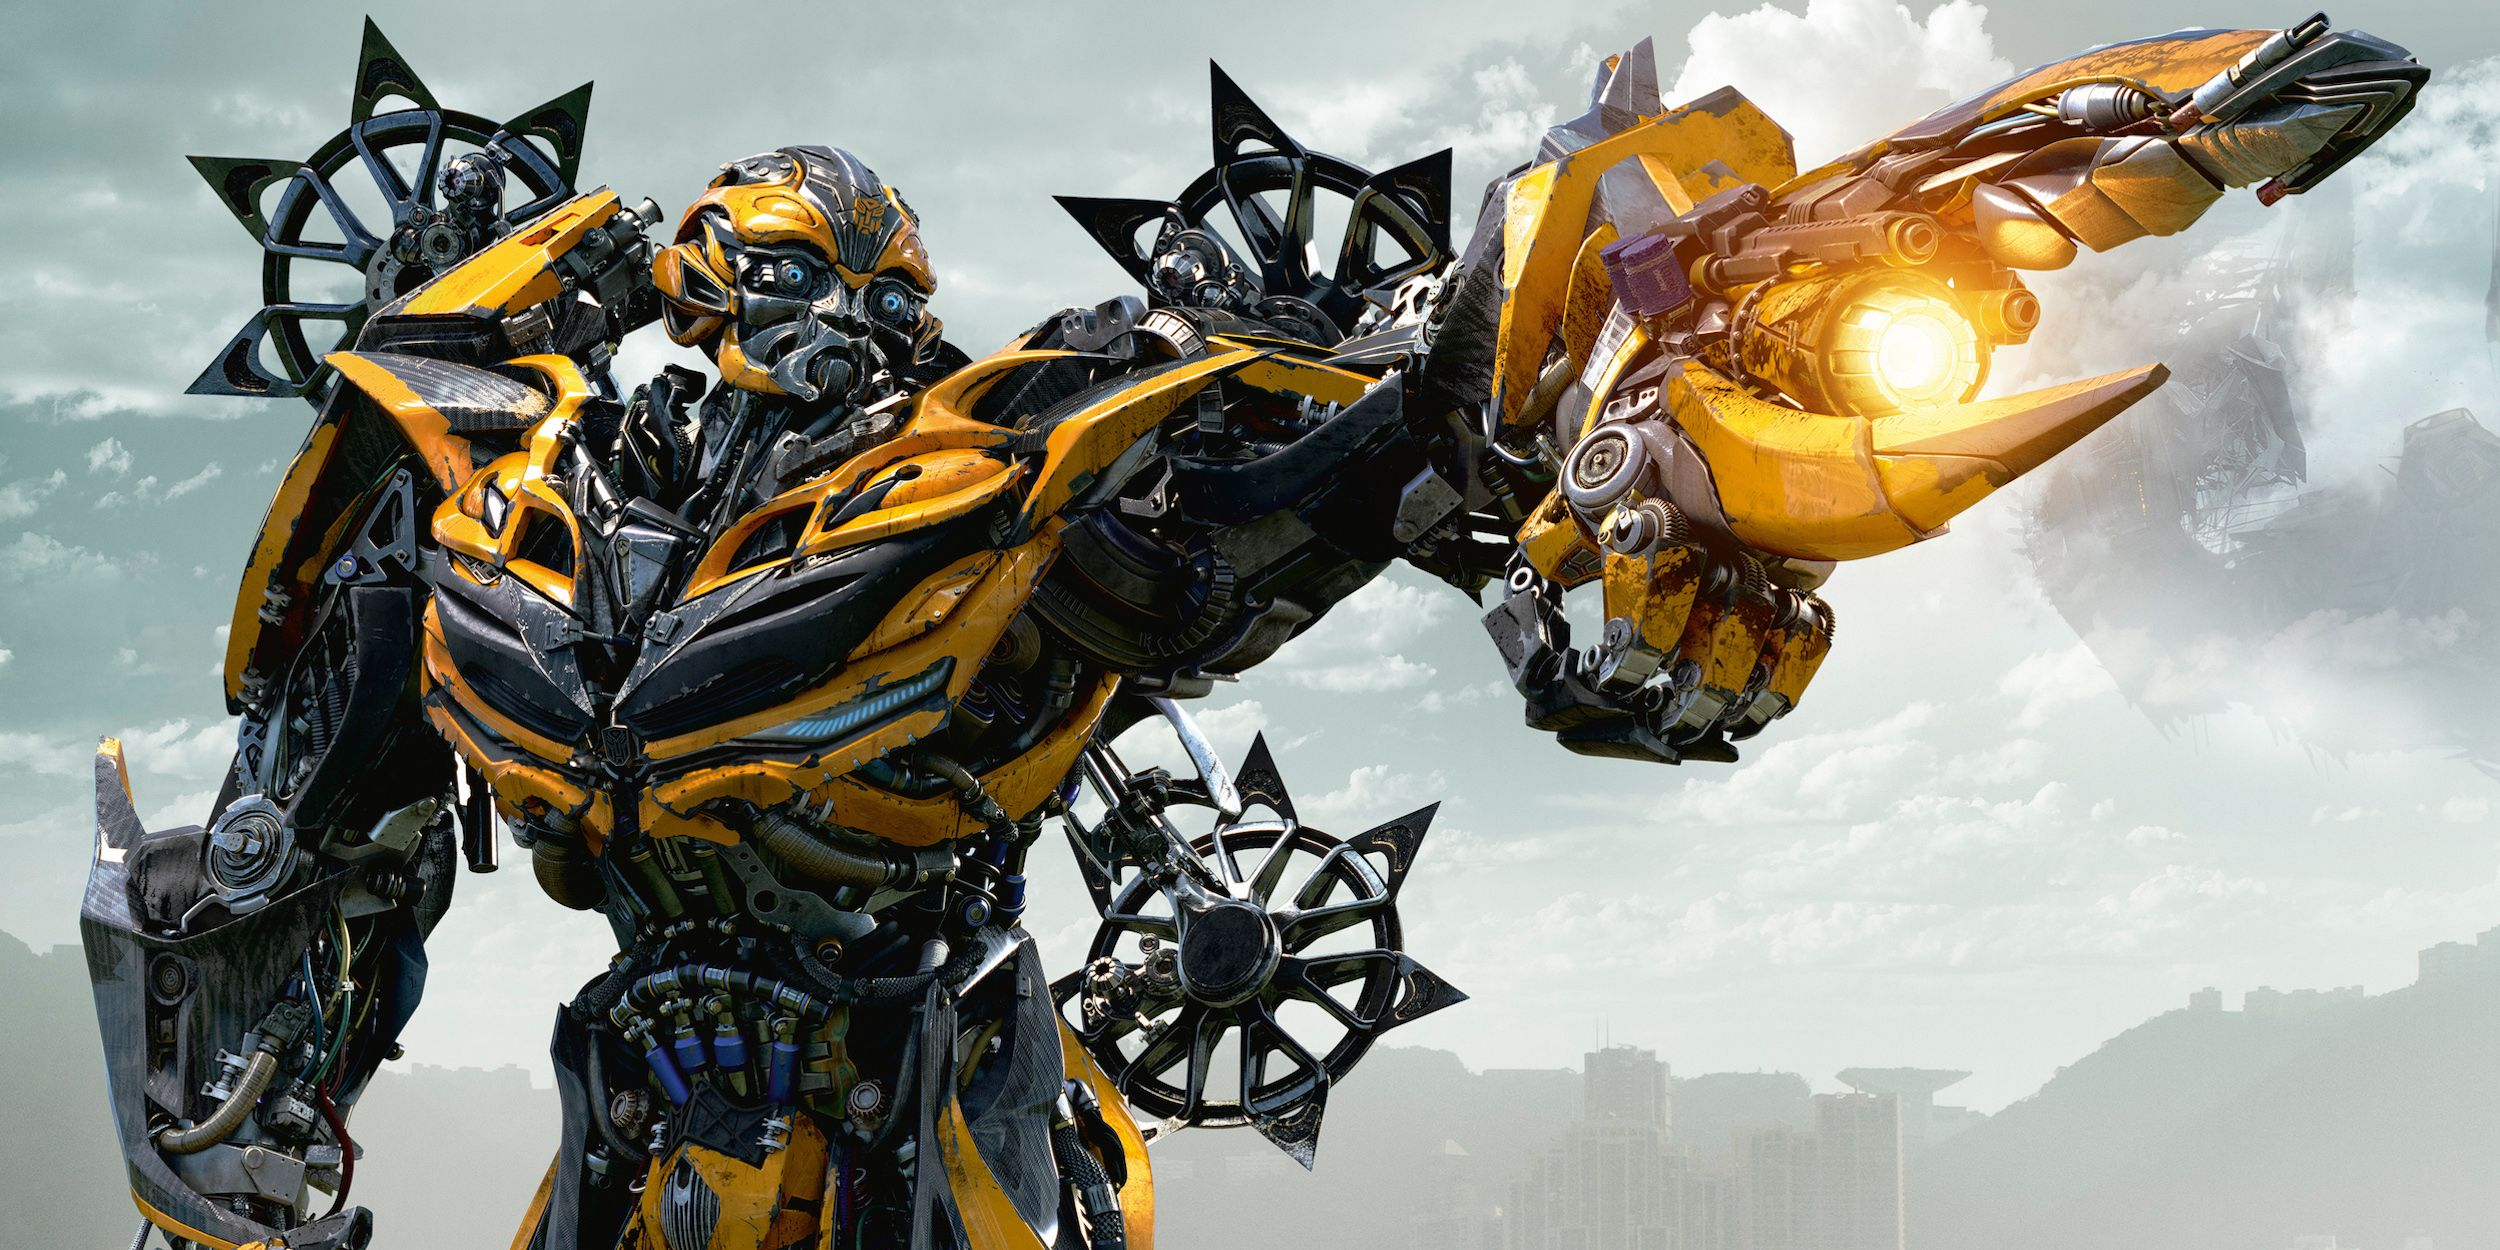 Transformers: 20 Strange Details About Bumblebee's Anatomy